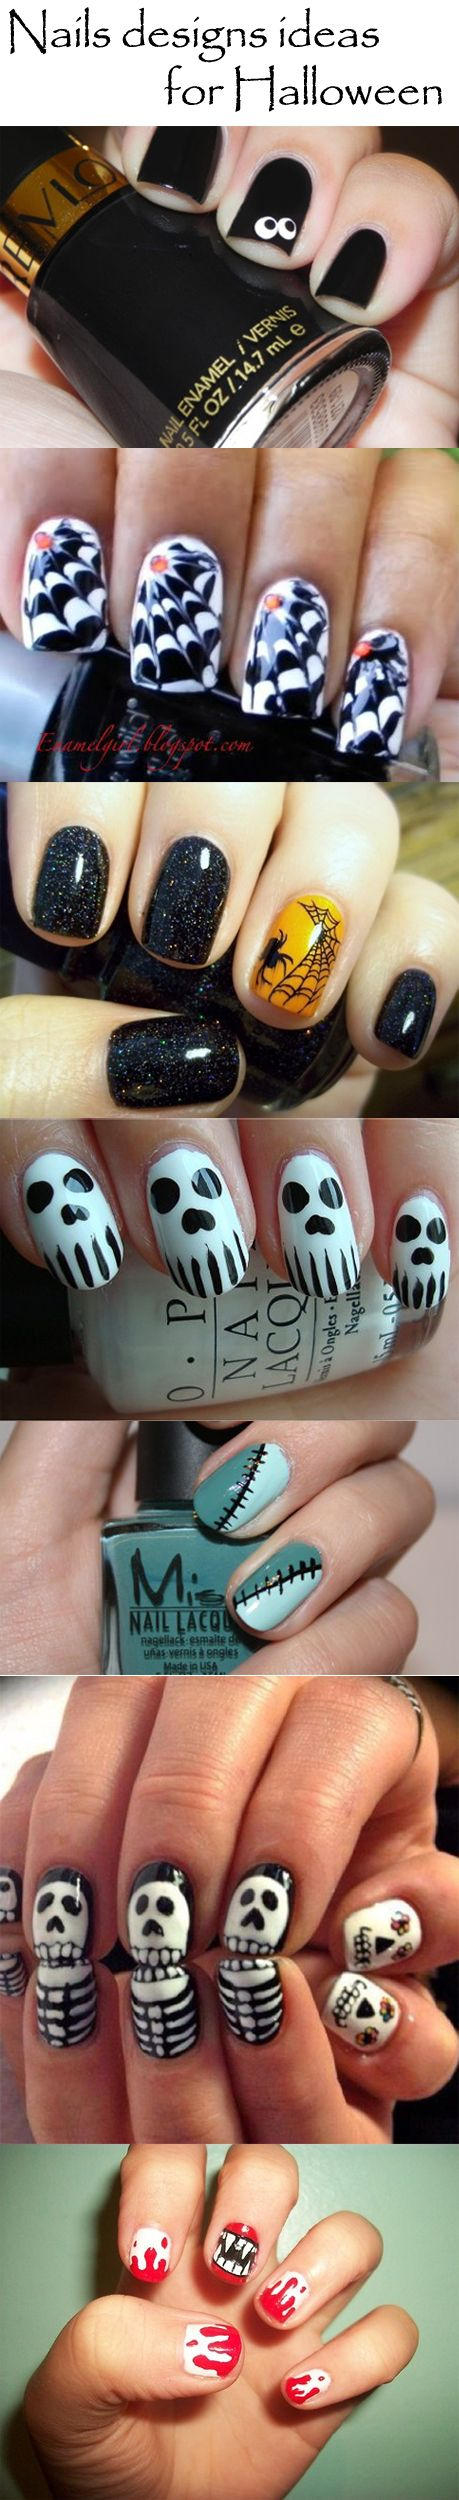 cute Halloween nails; nails designs ideas for Halloween - nail art #halloween #nailart #naildesign